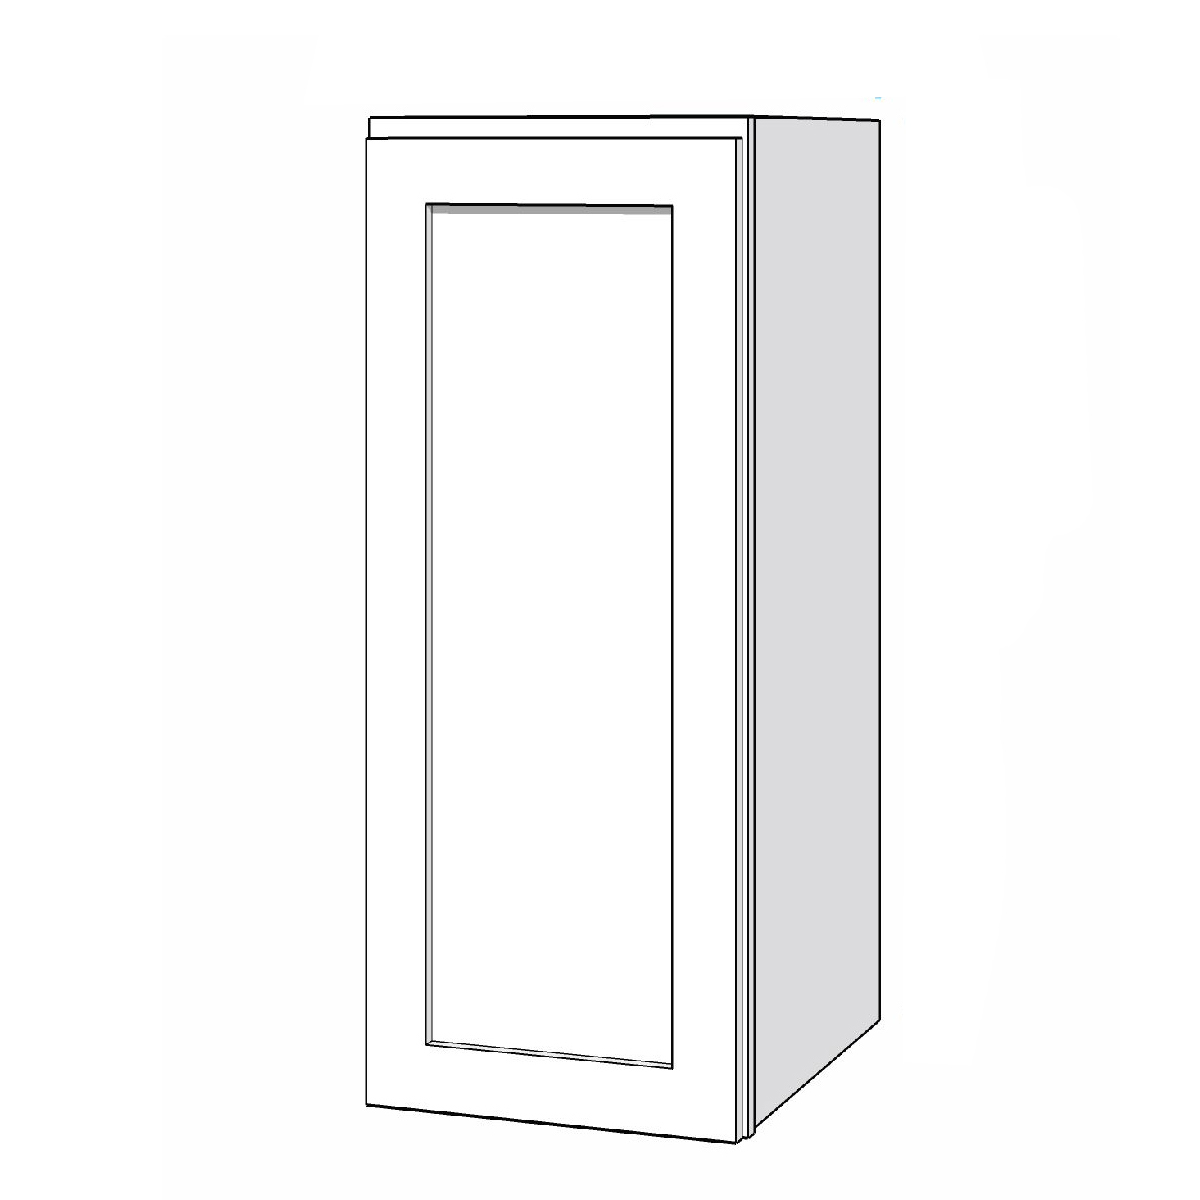 Wall Cabinet - 12in. x 30in. - White